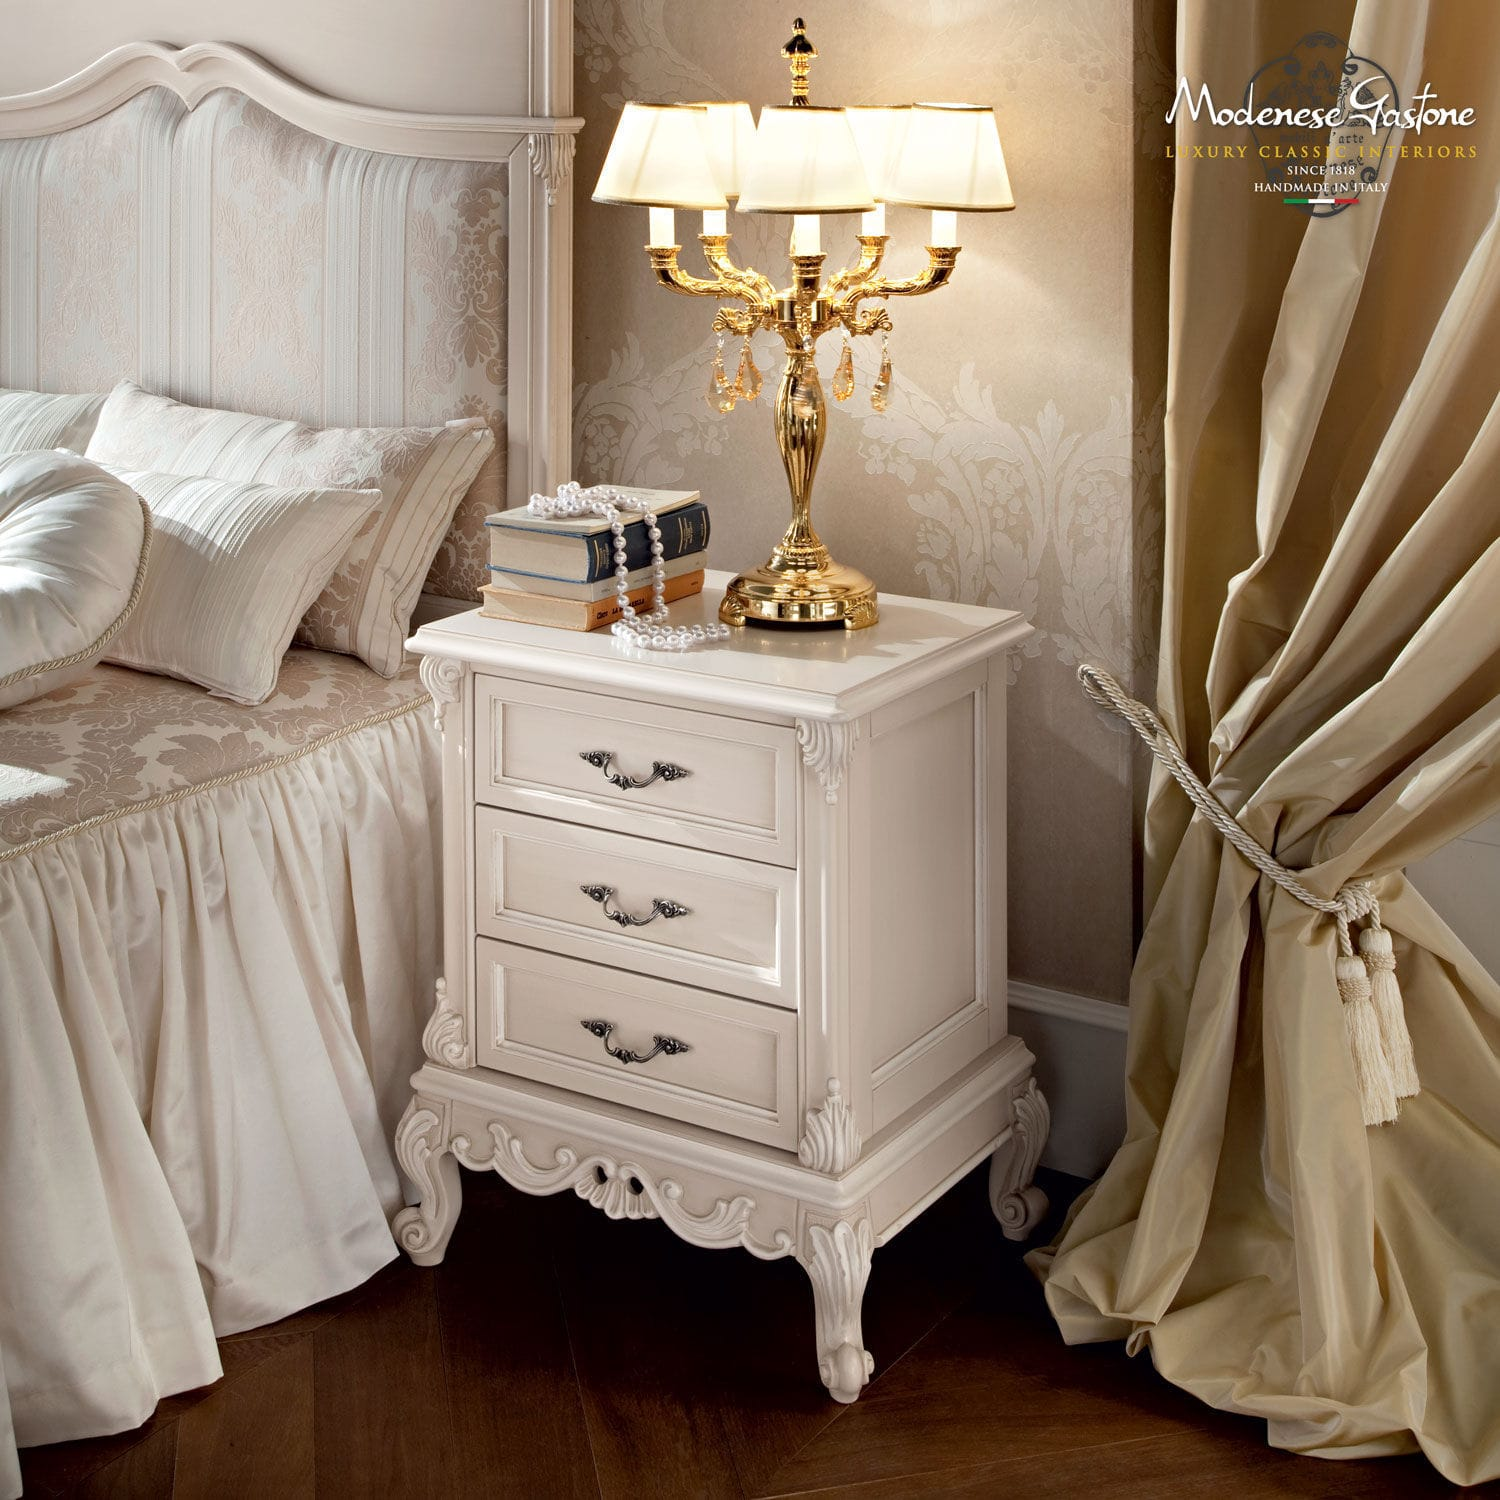 Classic bedside table - Bedside Table Classic Wooden Rectangular Casanova Modenese Gastone Luxury Classic Furniture